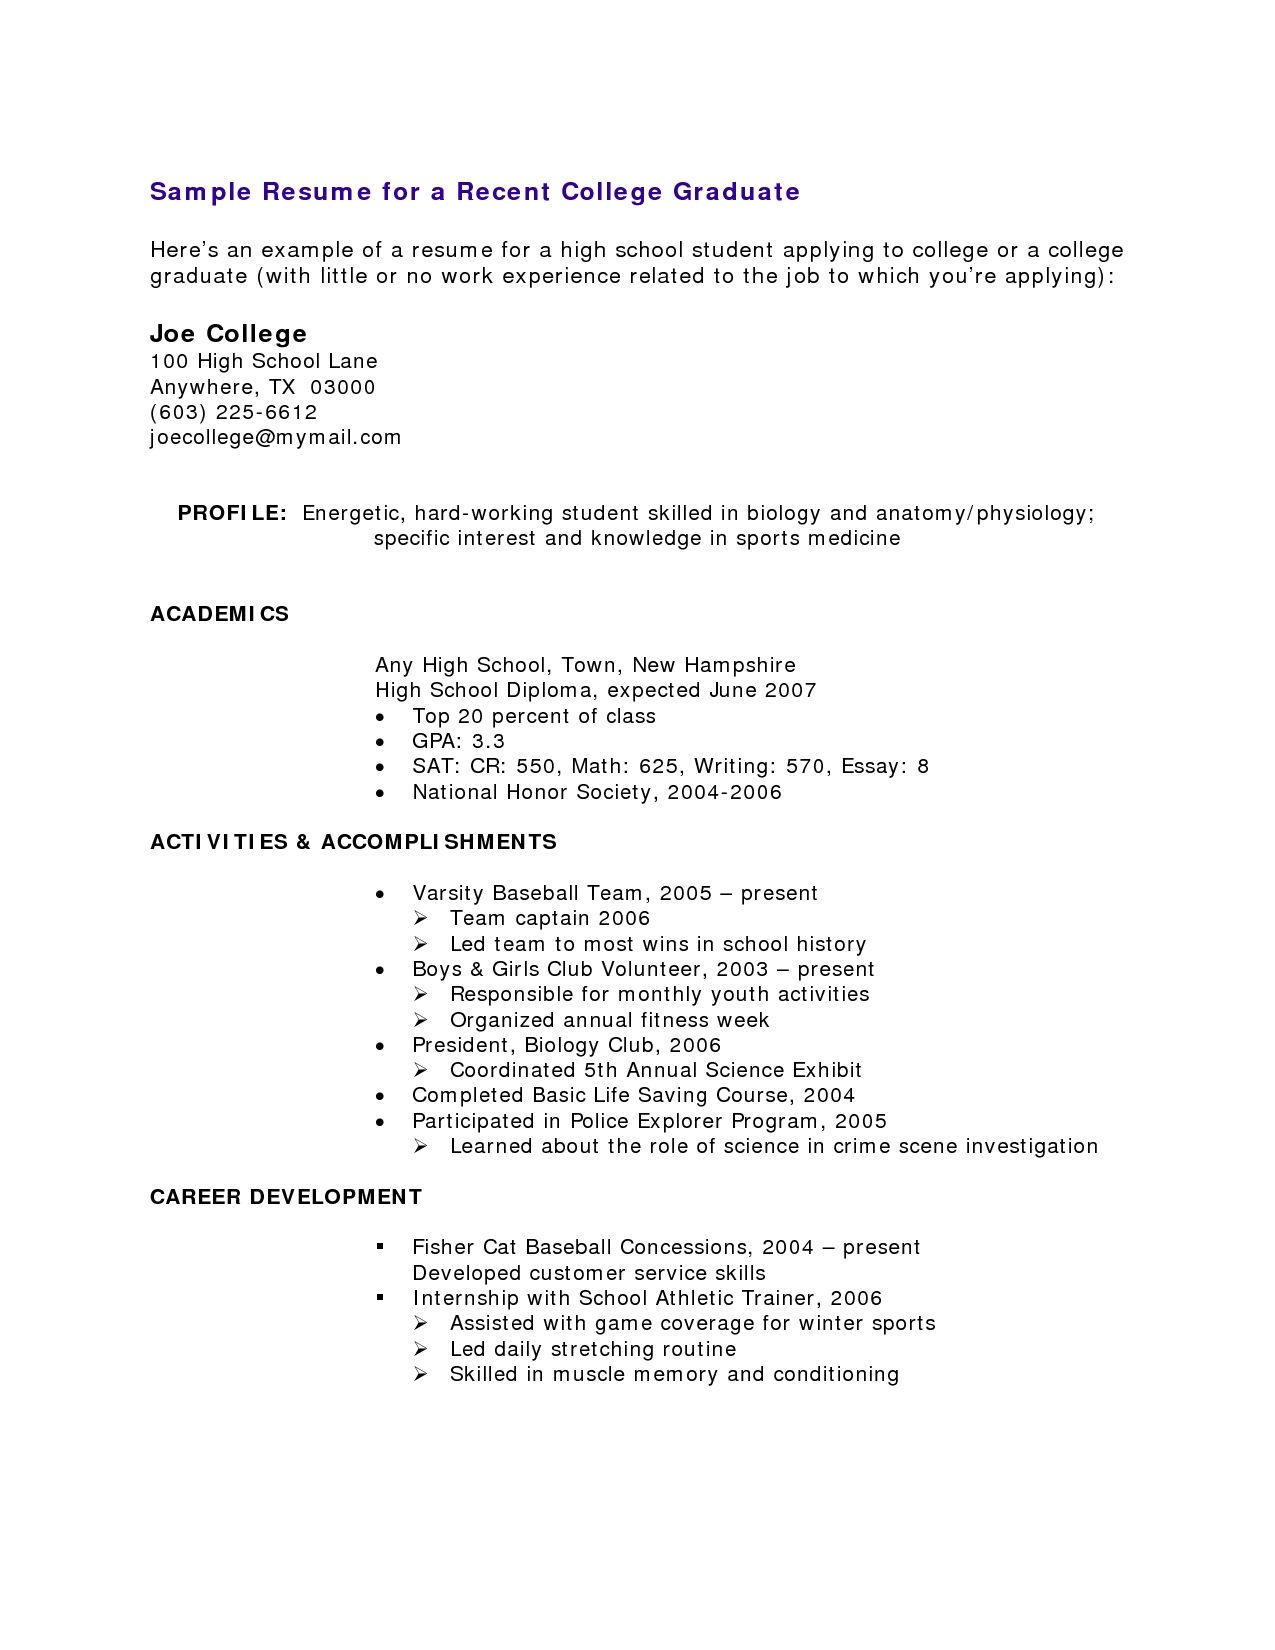 sample resume work experience sample resume format for fresh graduates one page format 2 high school - Resume Format With Work Experience